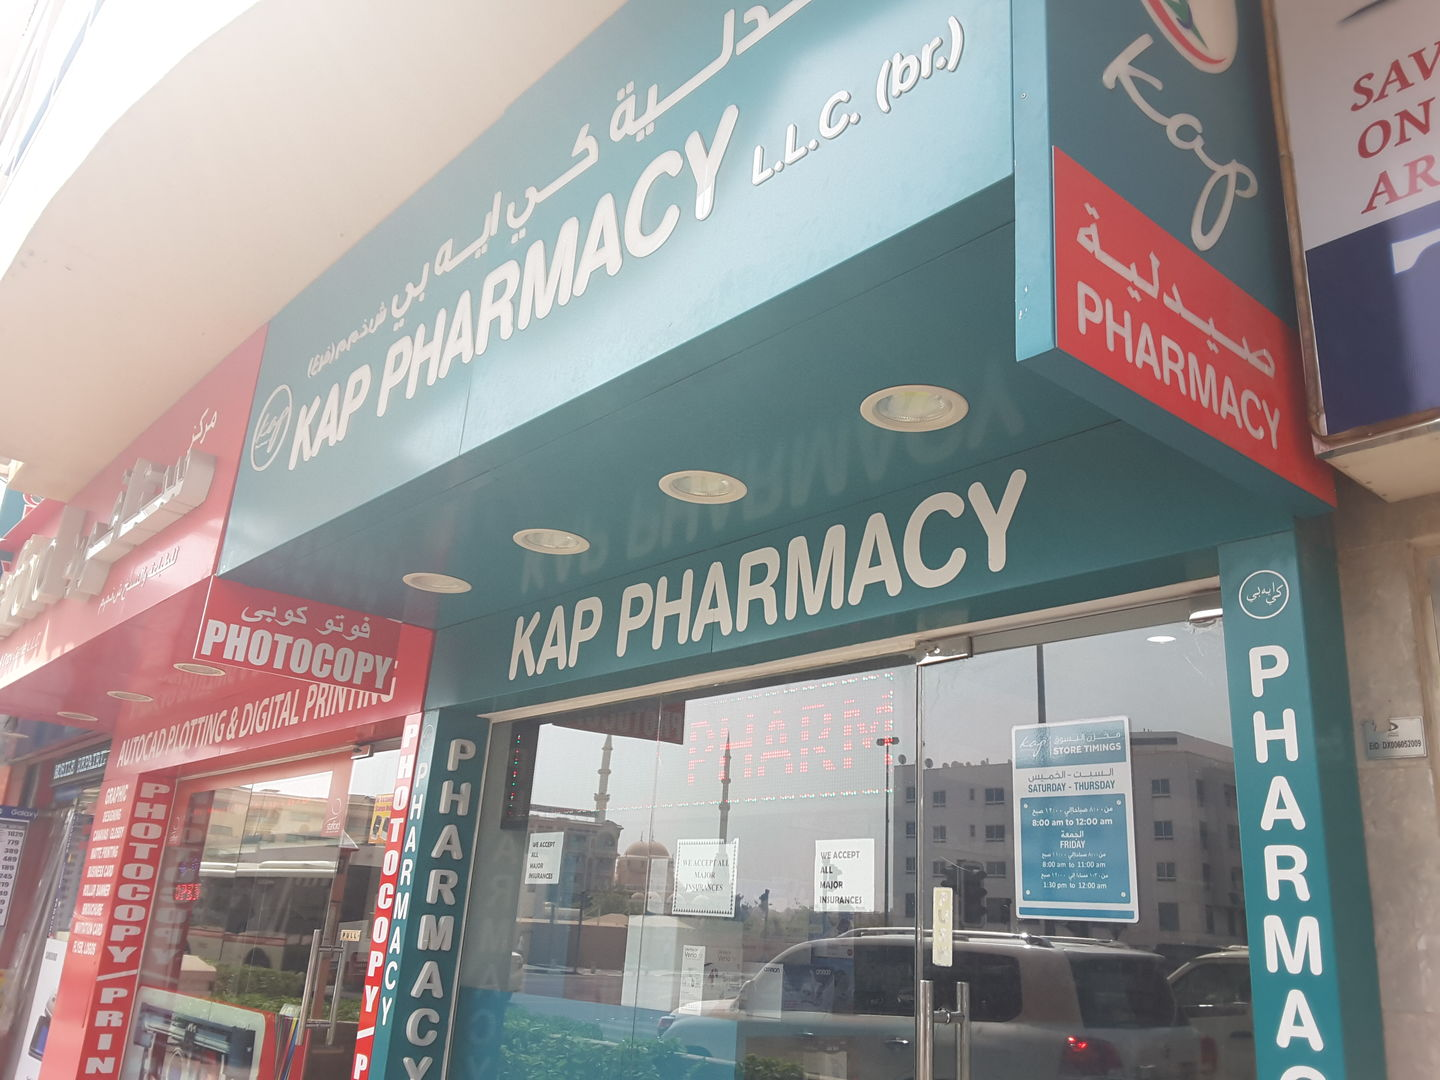 Walif-business-kap-pharmacy-1